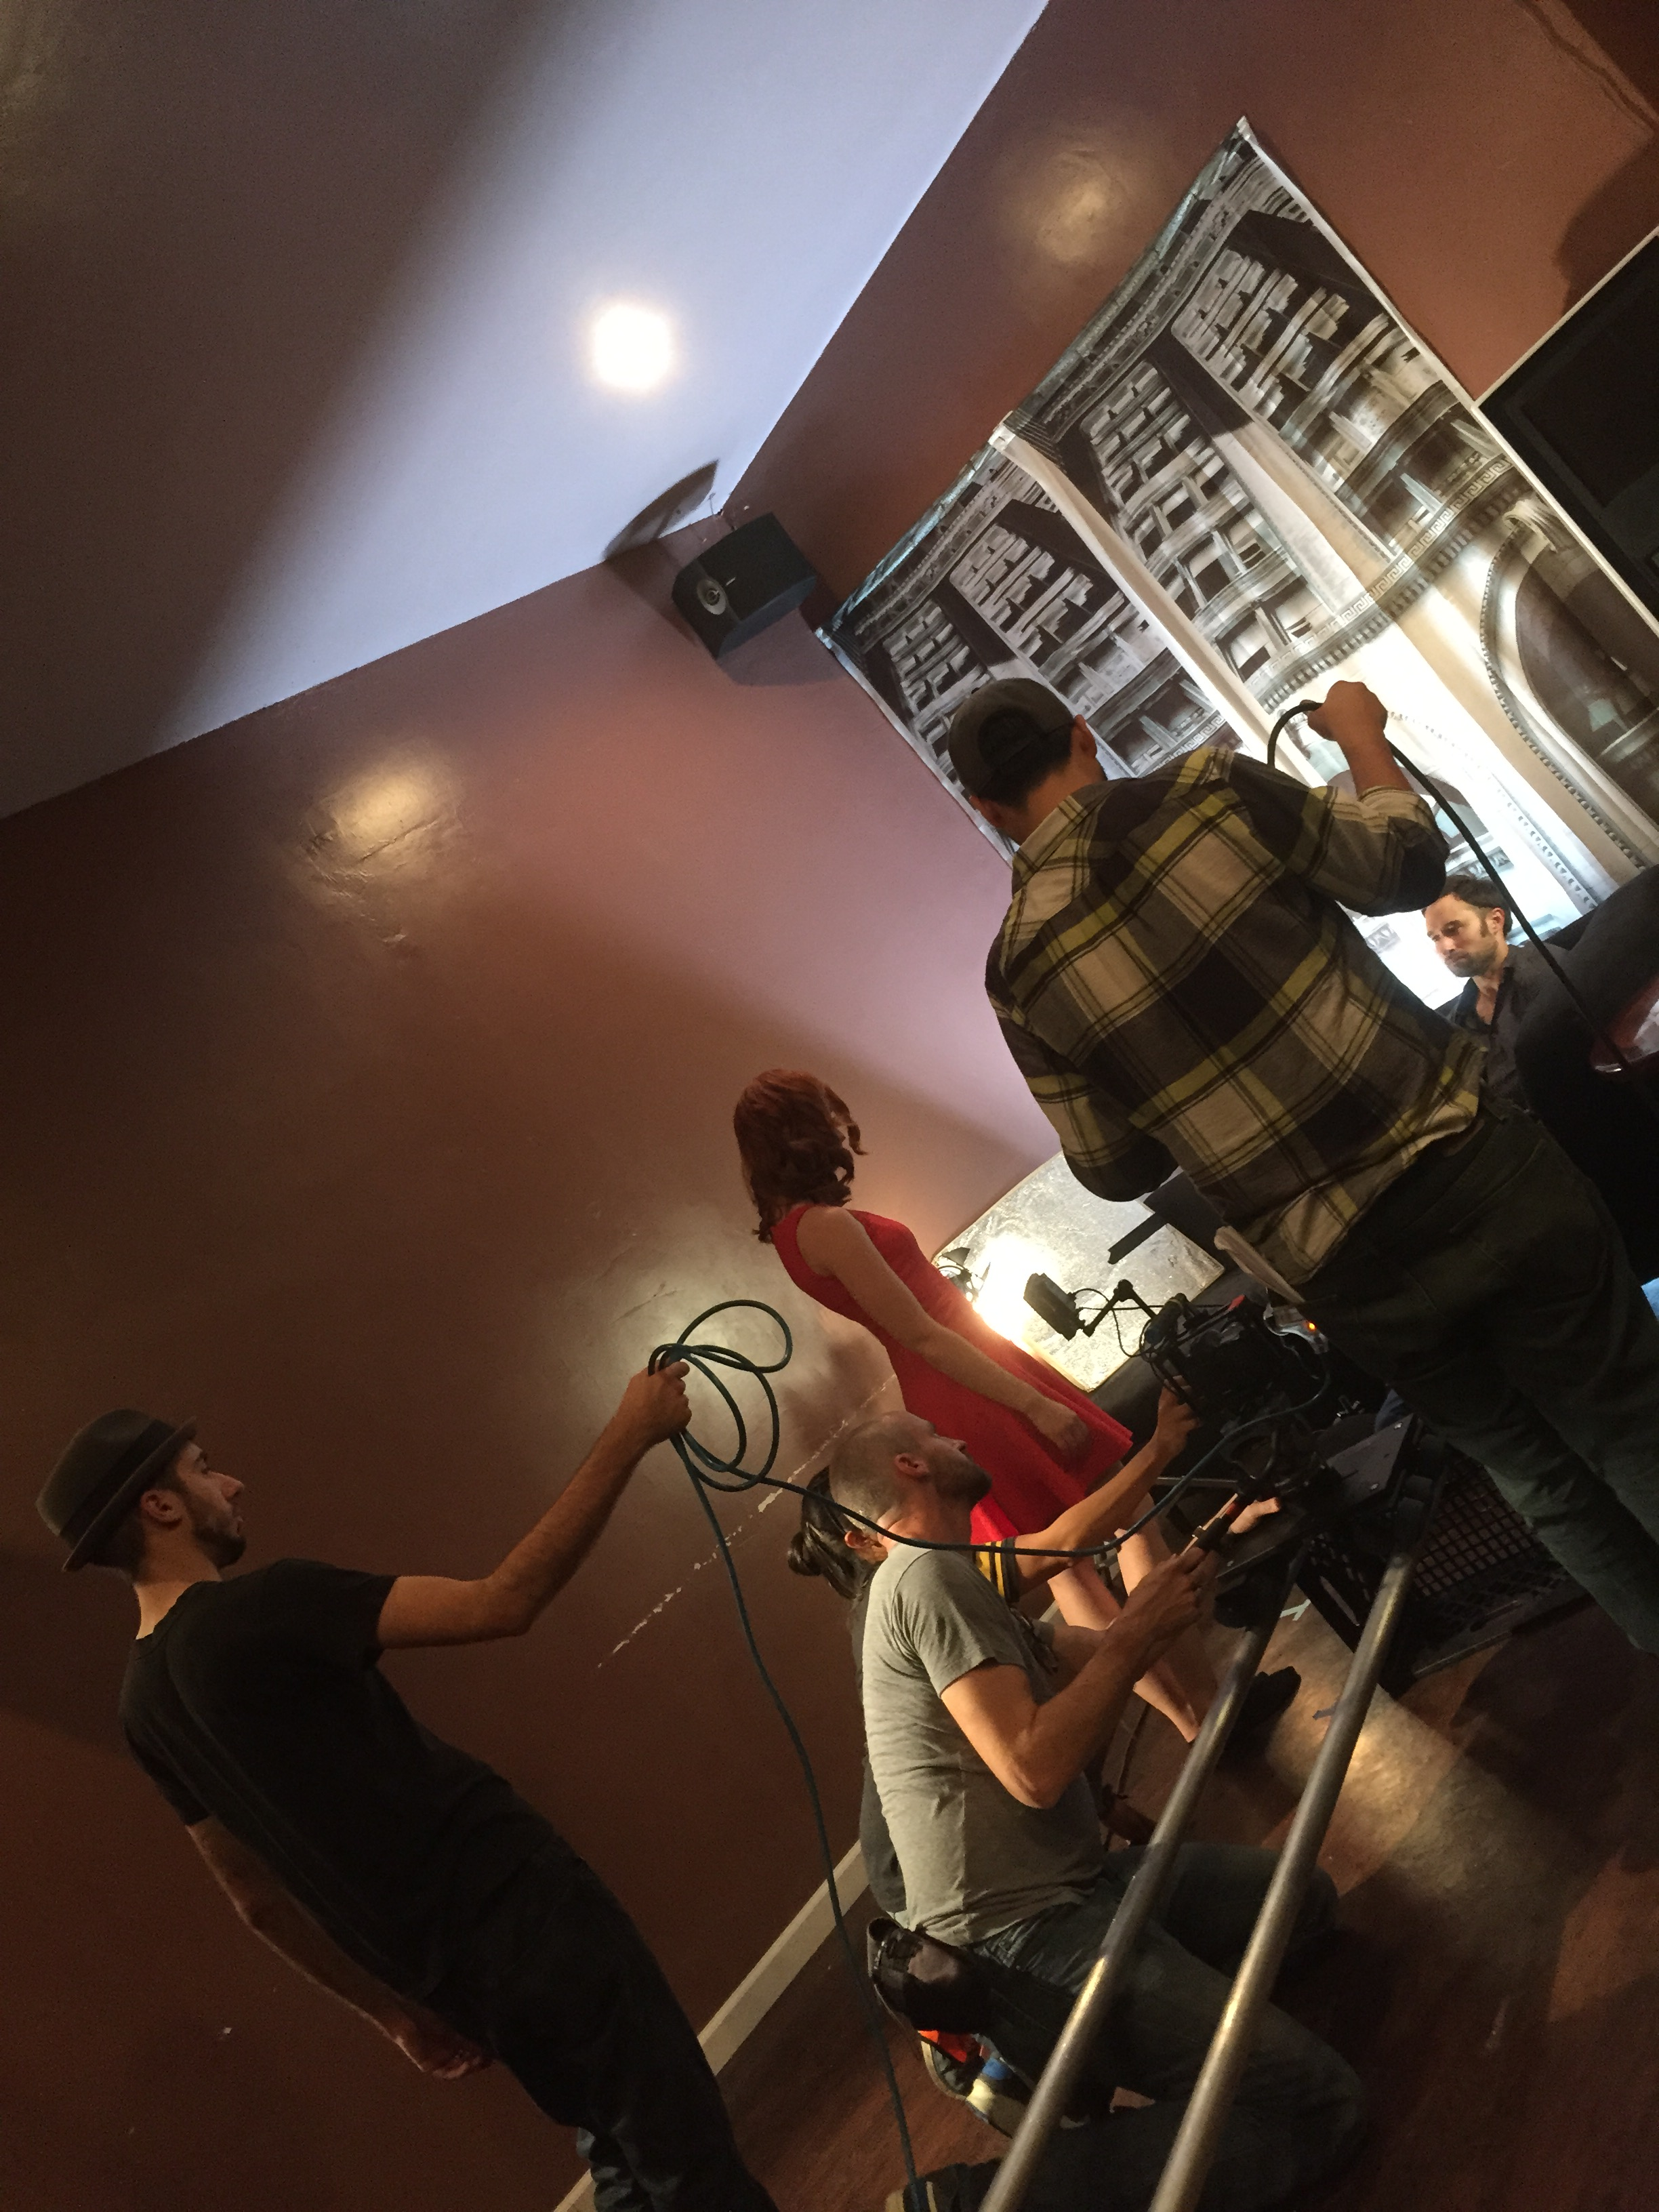 Cinematographer Patrick McGinley films a dolly shot with Assistant Directors Gabe Arredondo and Jose Luis Gonzalez.